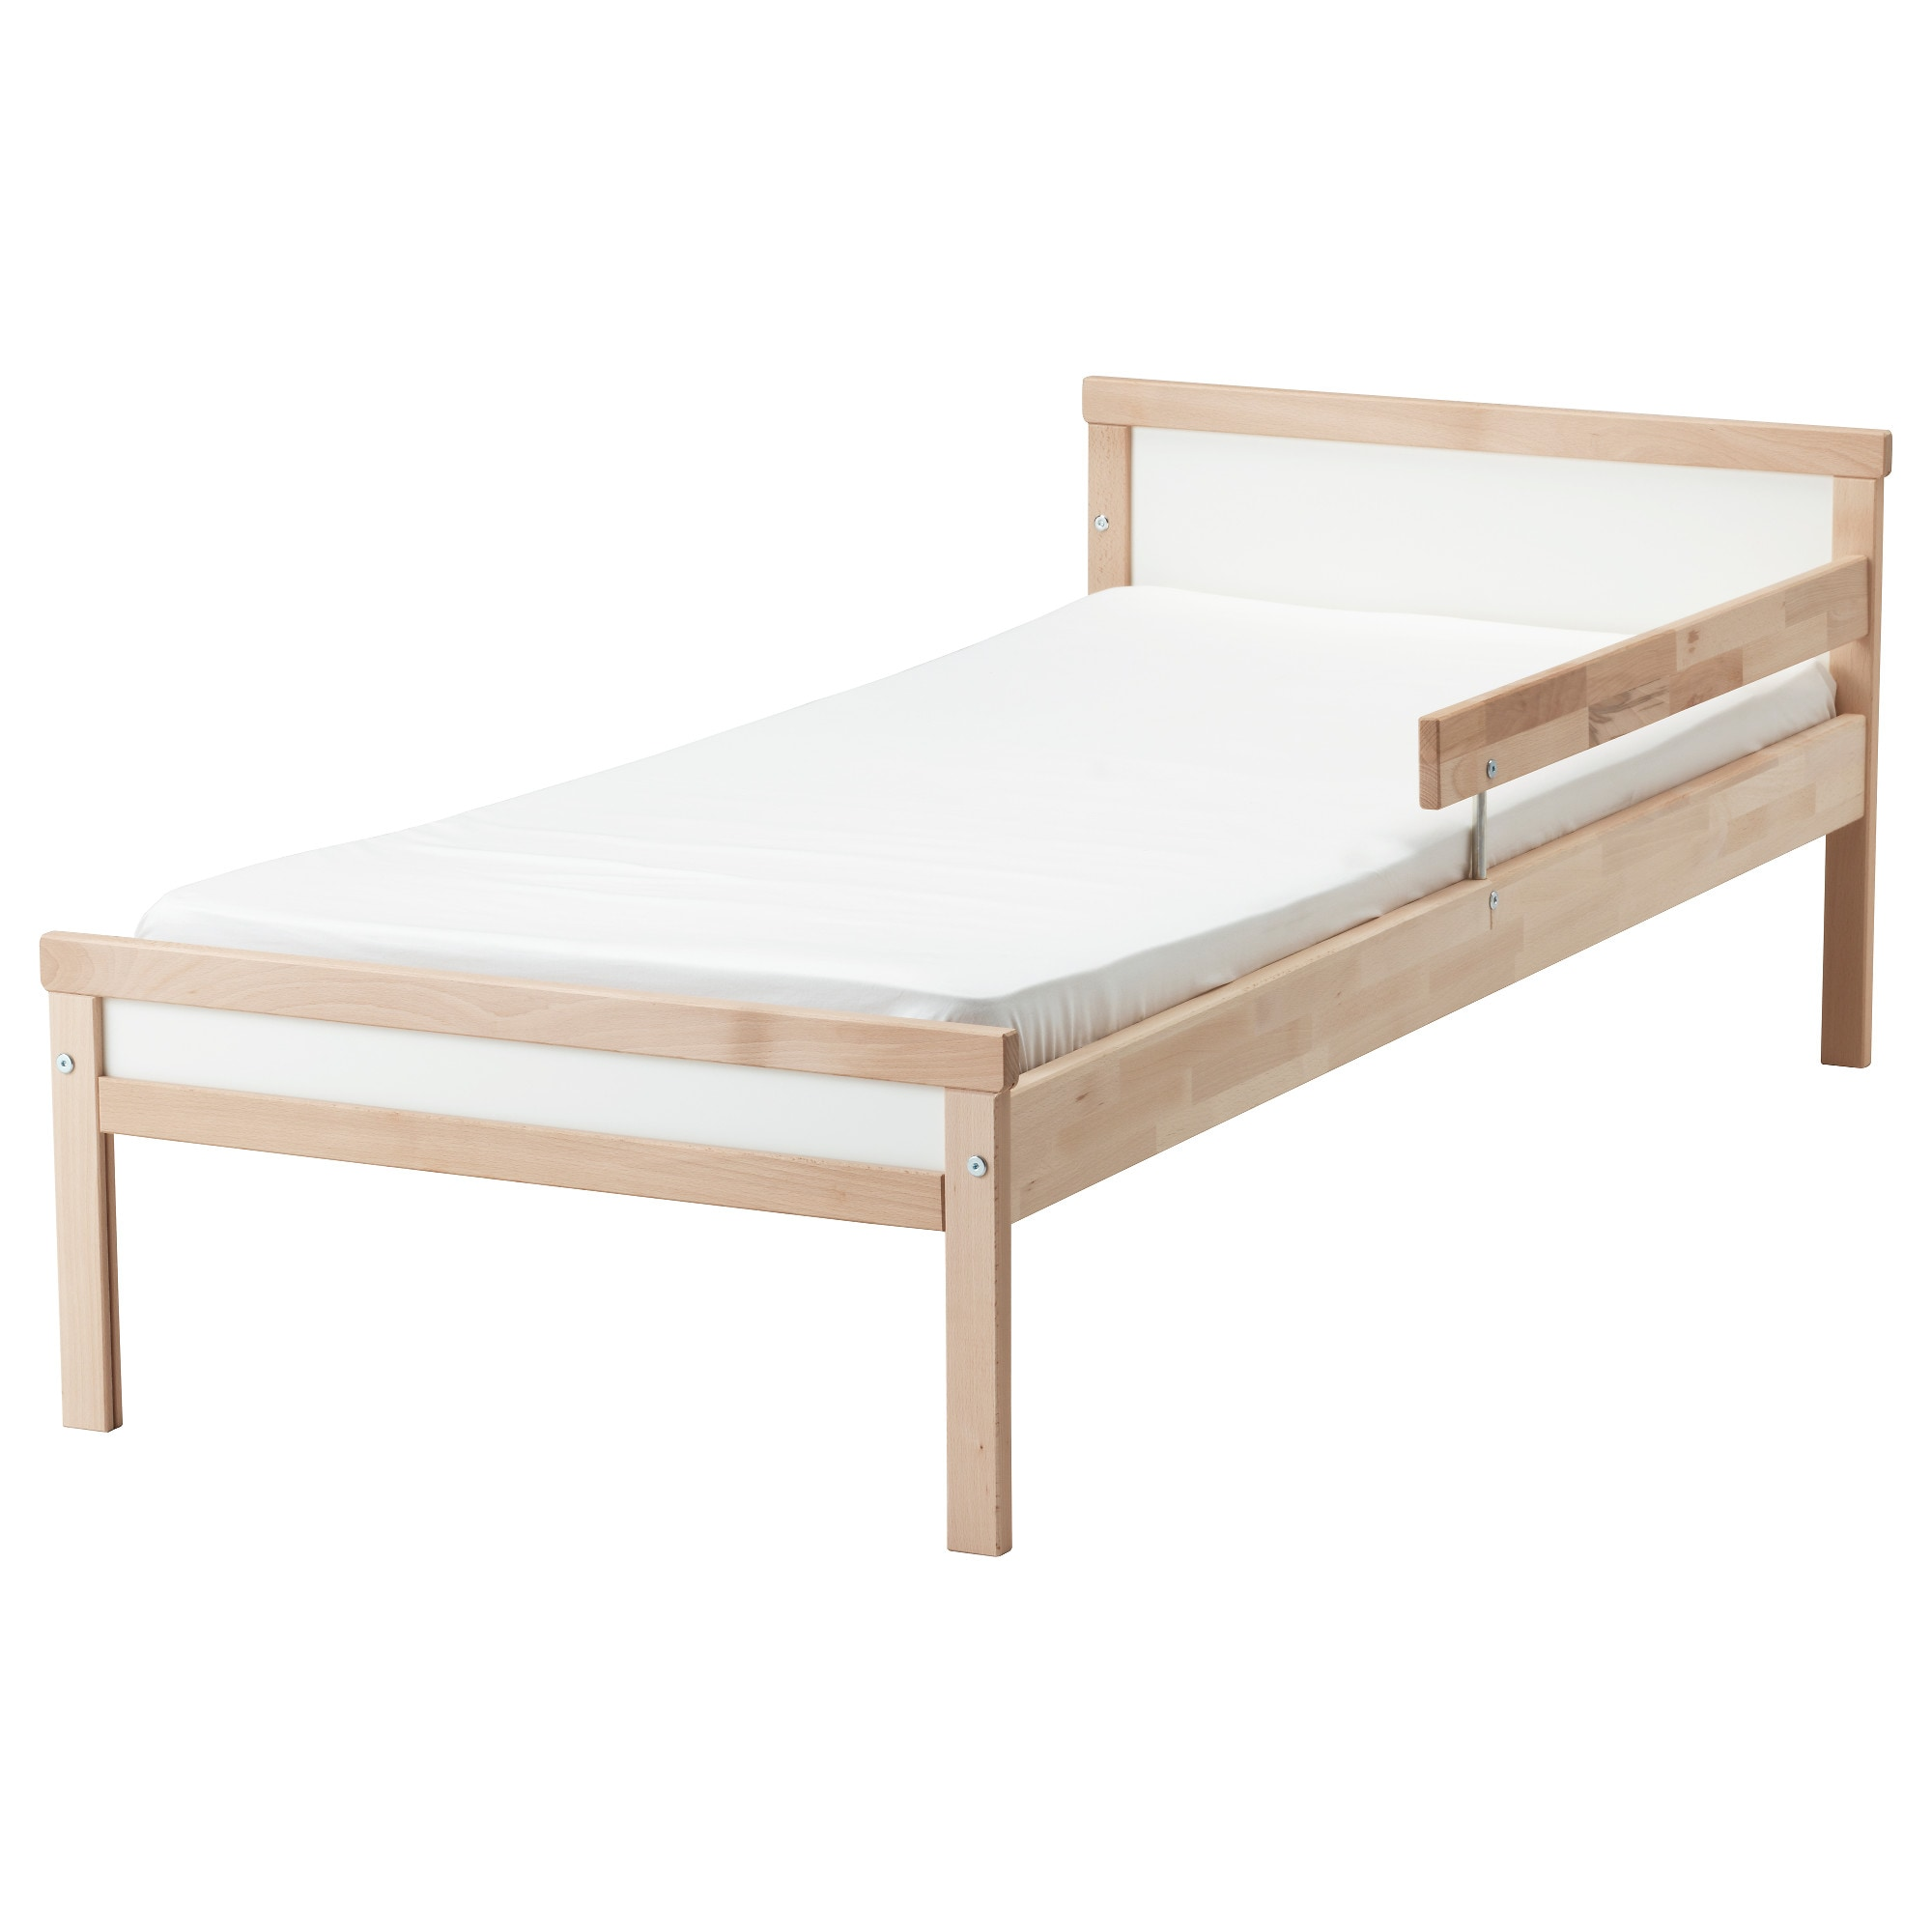 SNIGLAR Bed Frame With Slatted Base